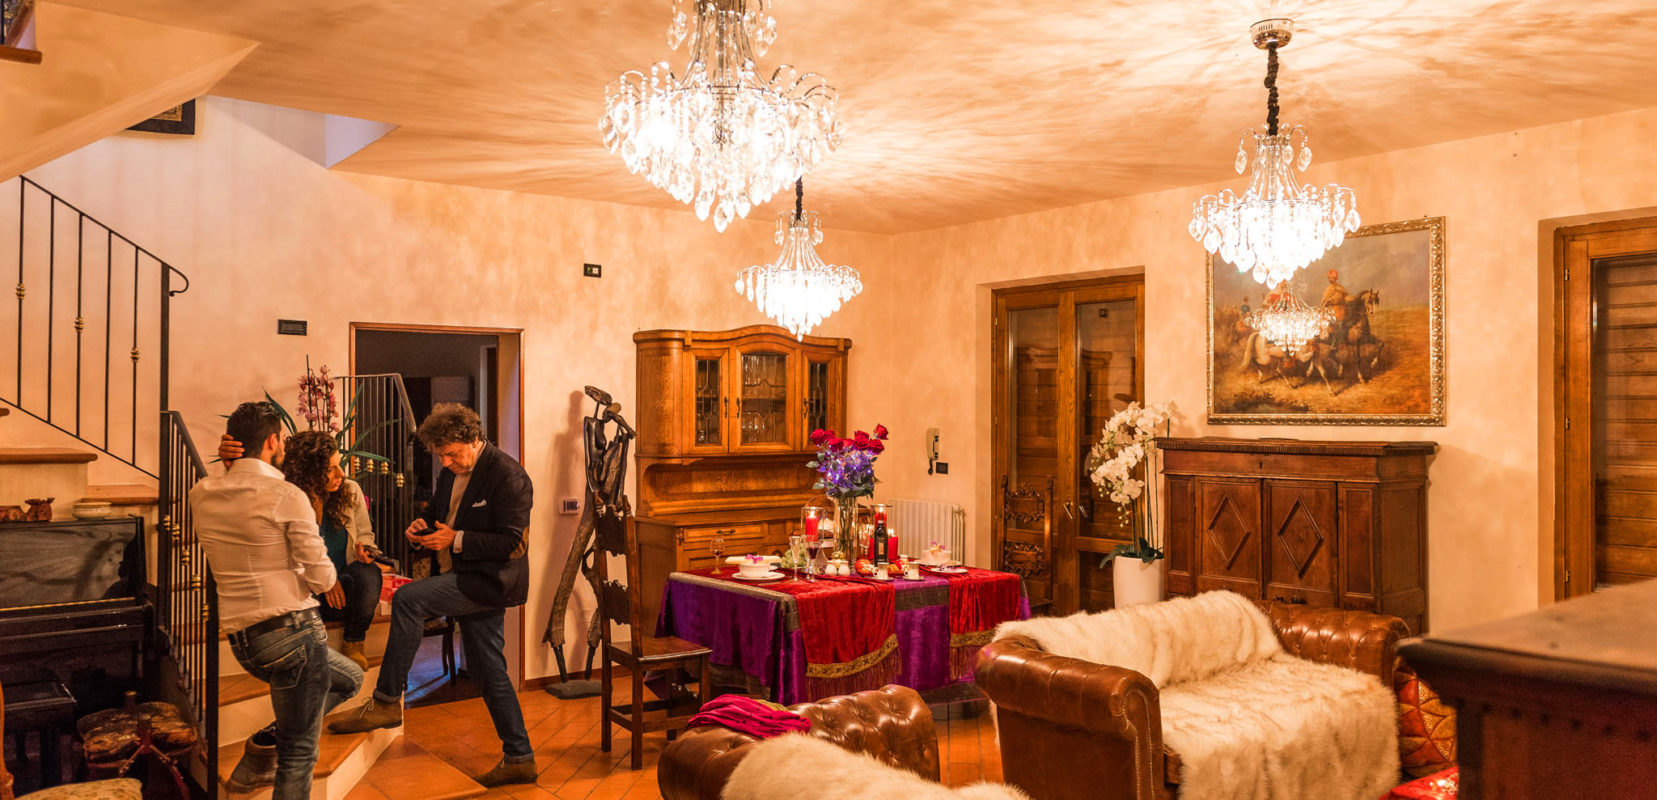 Luxury, people, meat, cristal chandelairs, sofas